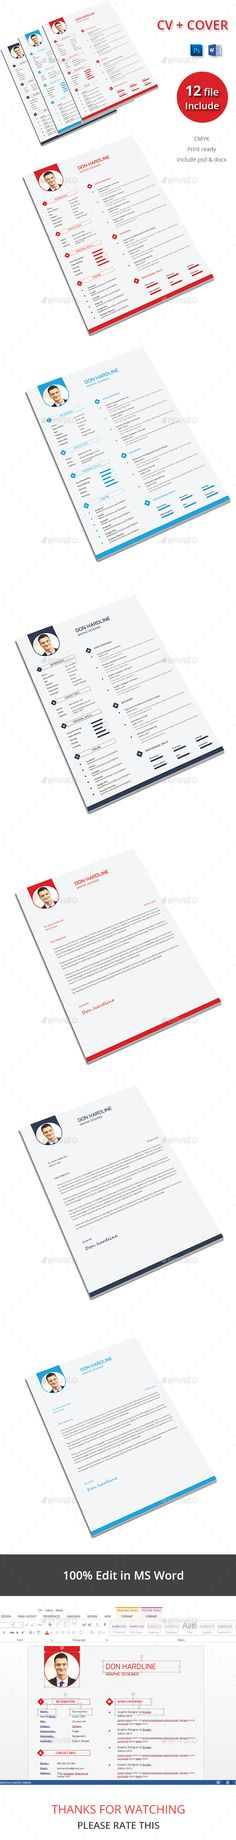 The CV — Photoshop PSD #clean resume #professional resume • Available here → https://graphicriver.net/item/the-cv/13445007?ref=pxcr